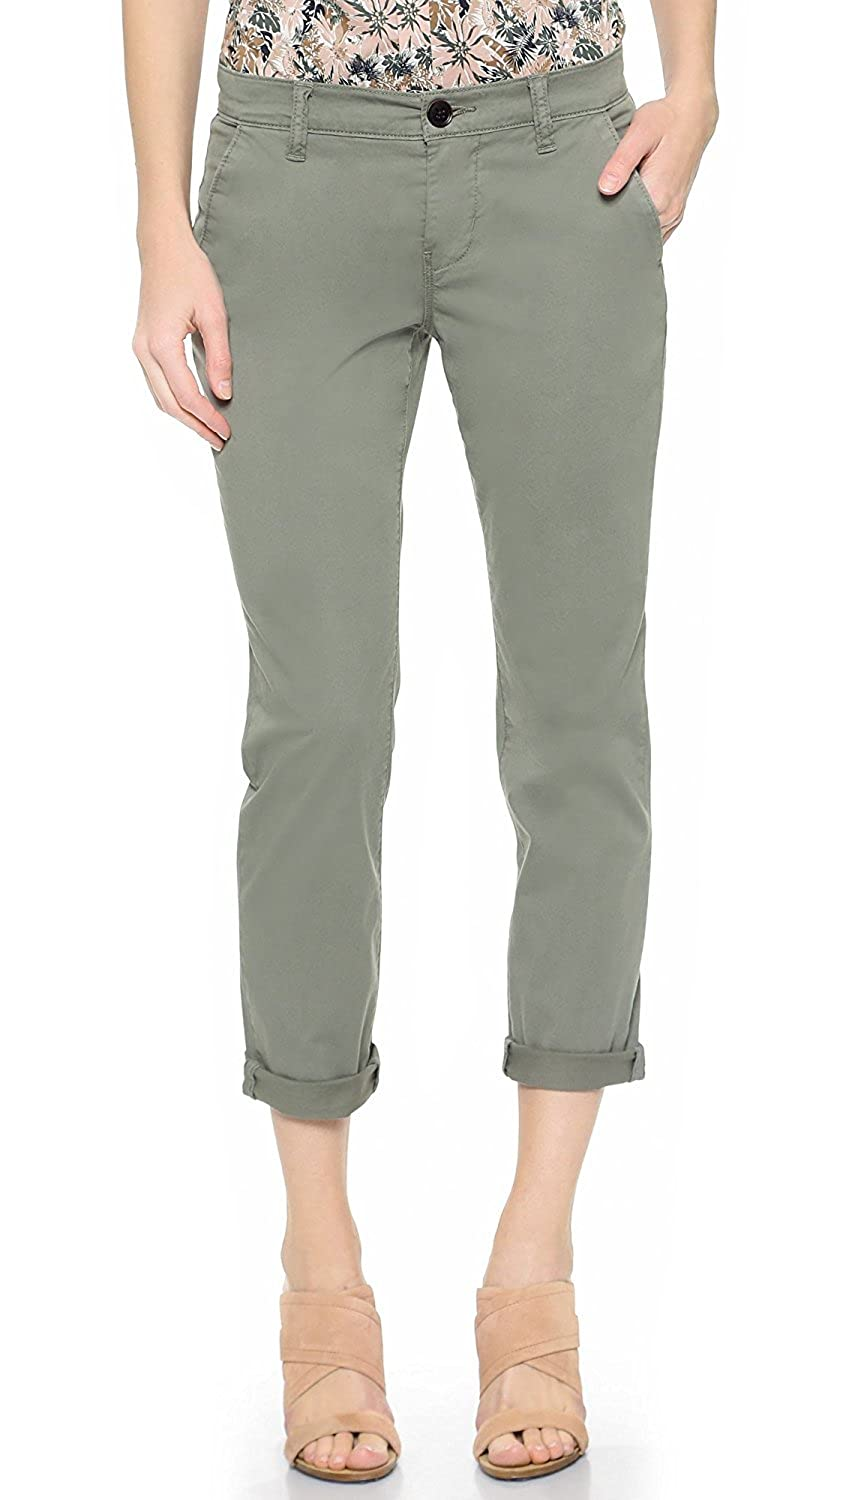 J Brand Women's Alex Slim Chinos Tarmac 27